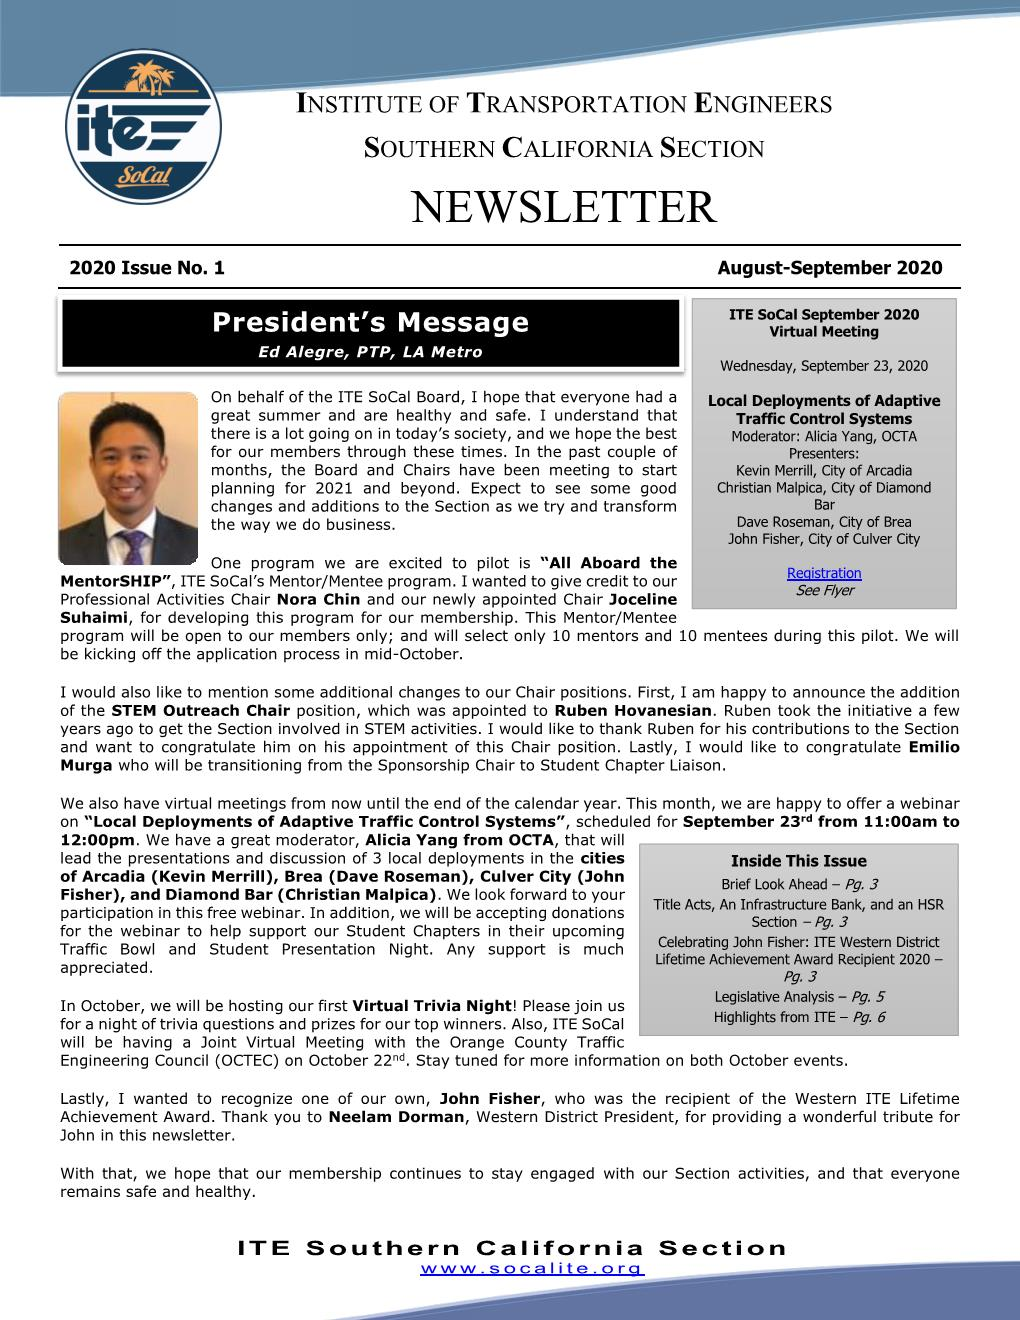 2020-09 - Newsletter - September 2020 IT